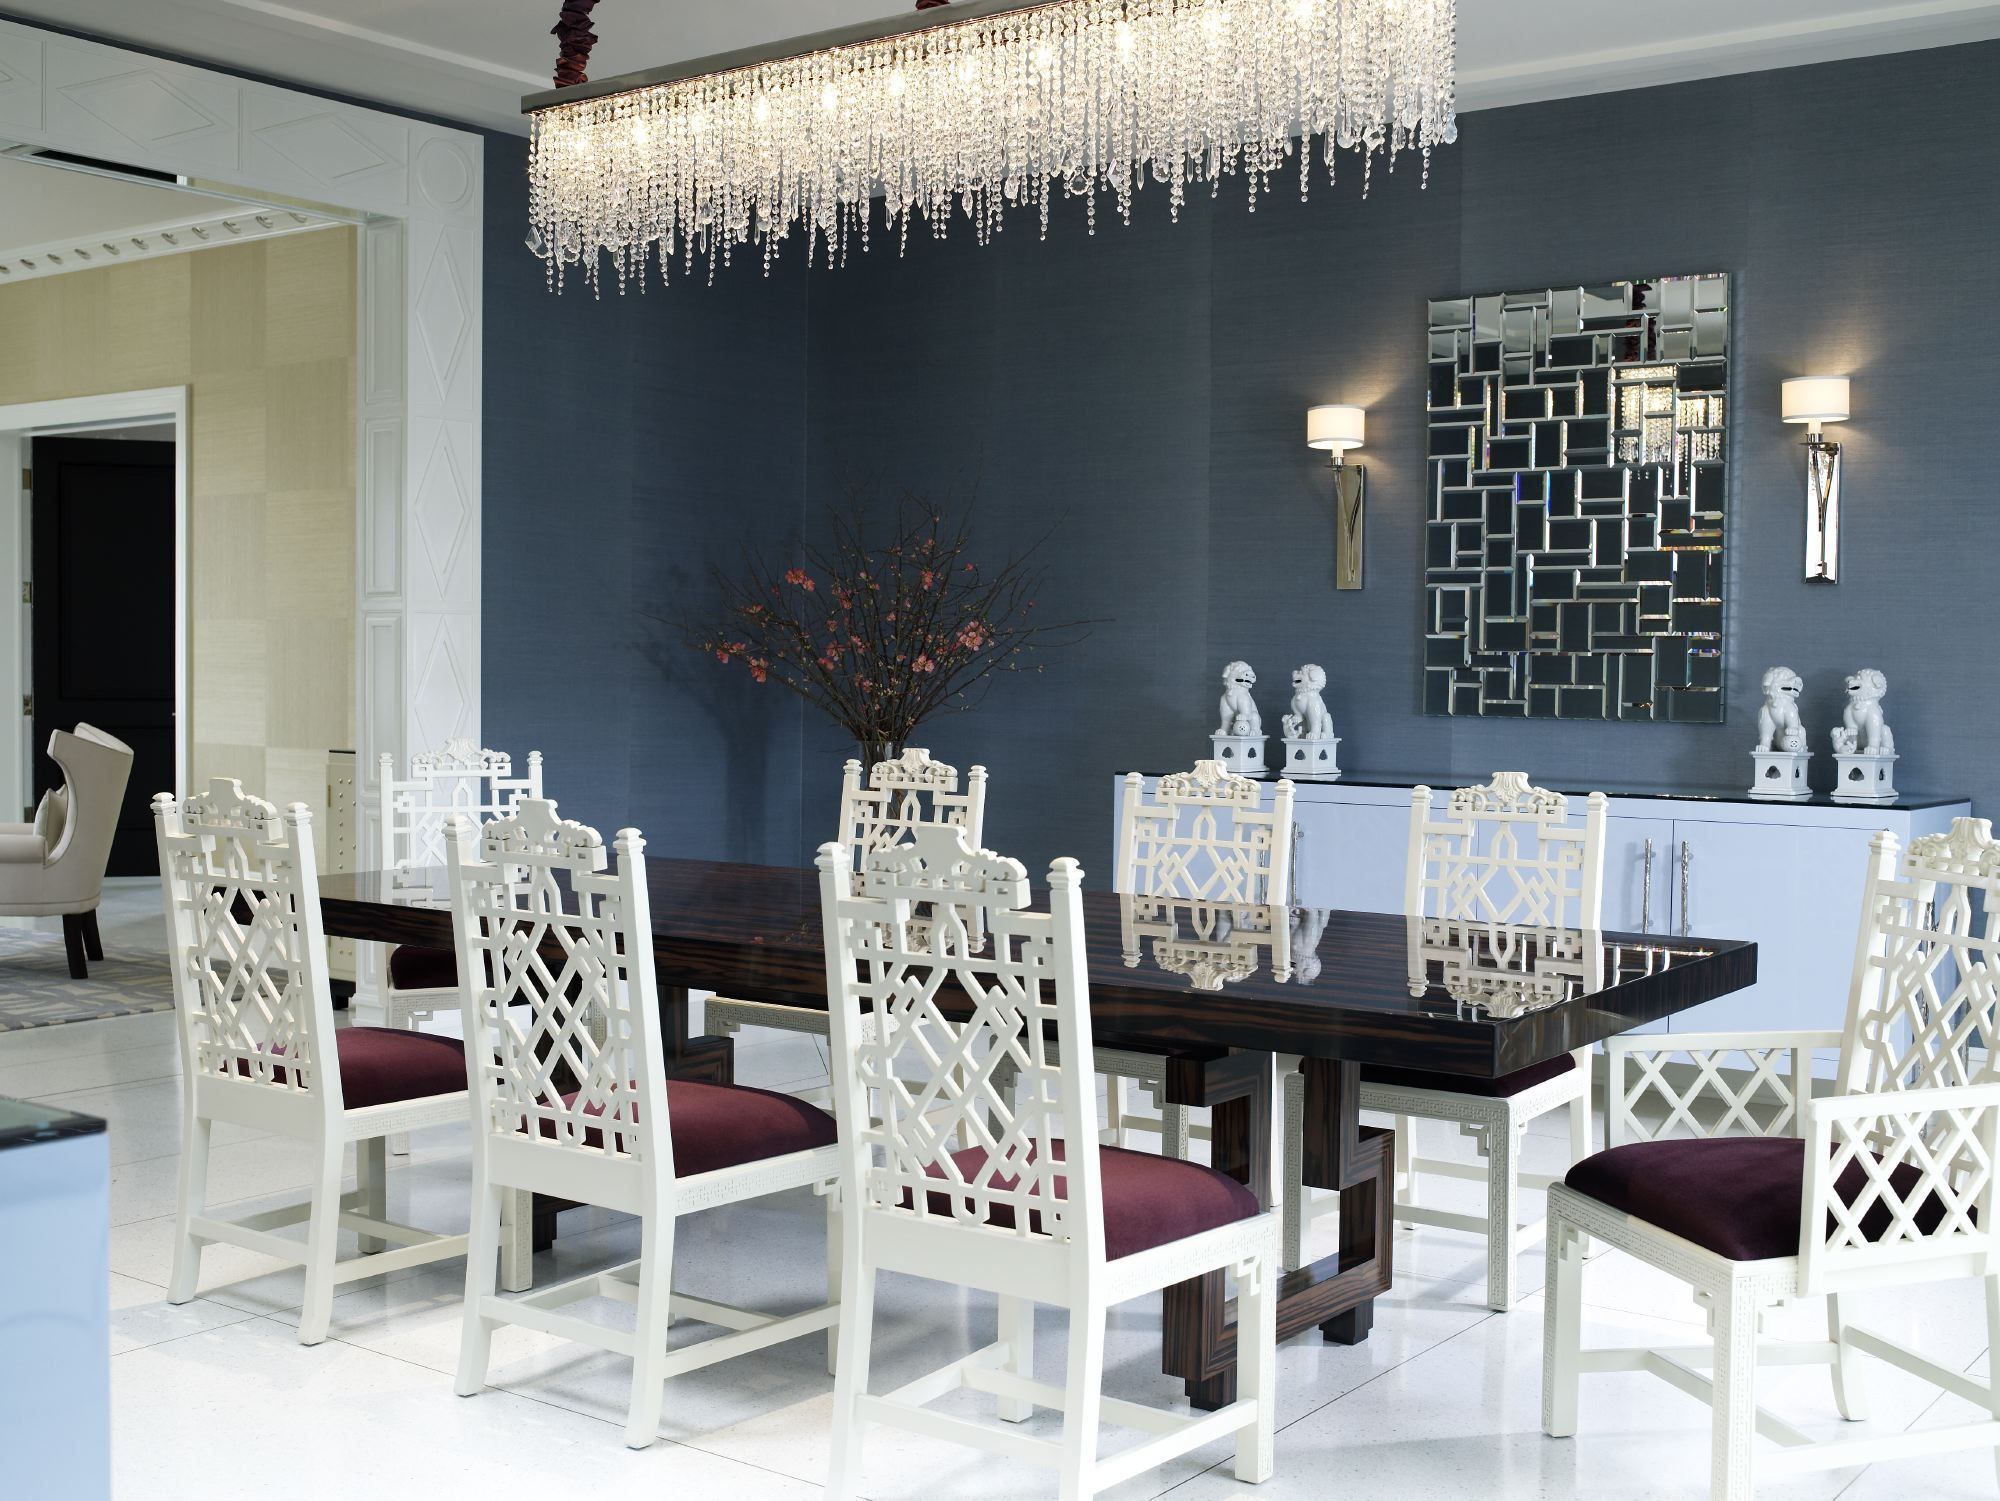 Amazing Ideas Modern Dining Rooms. Elle Decor Predicts The Color Trends for 2017  Dining Room decor